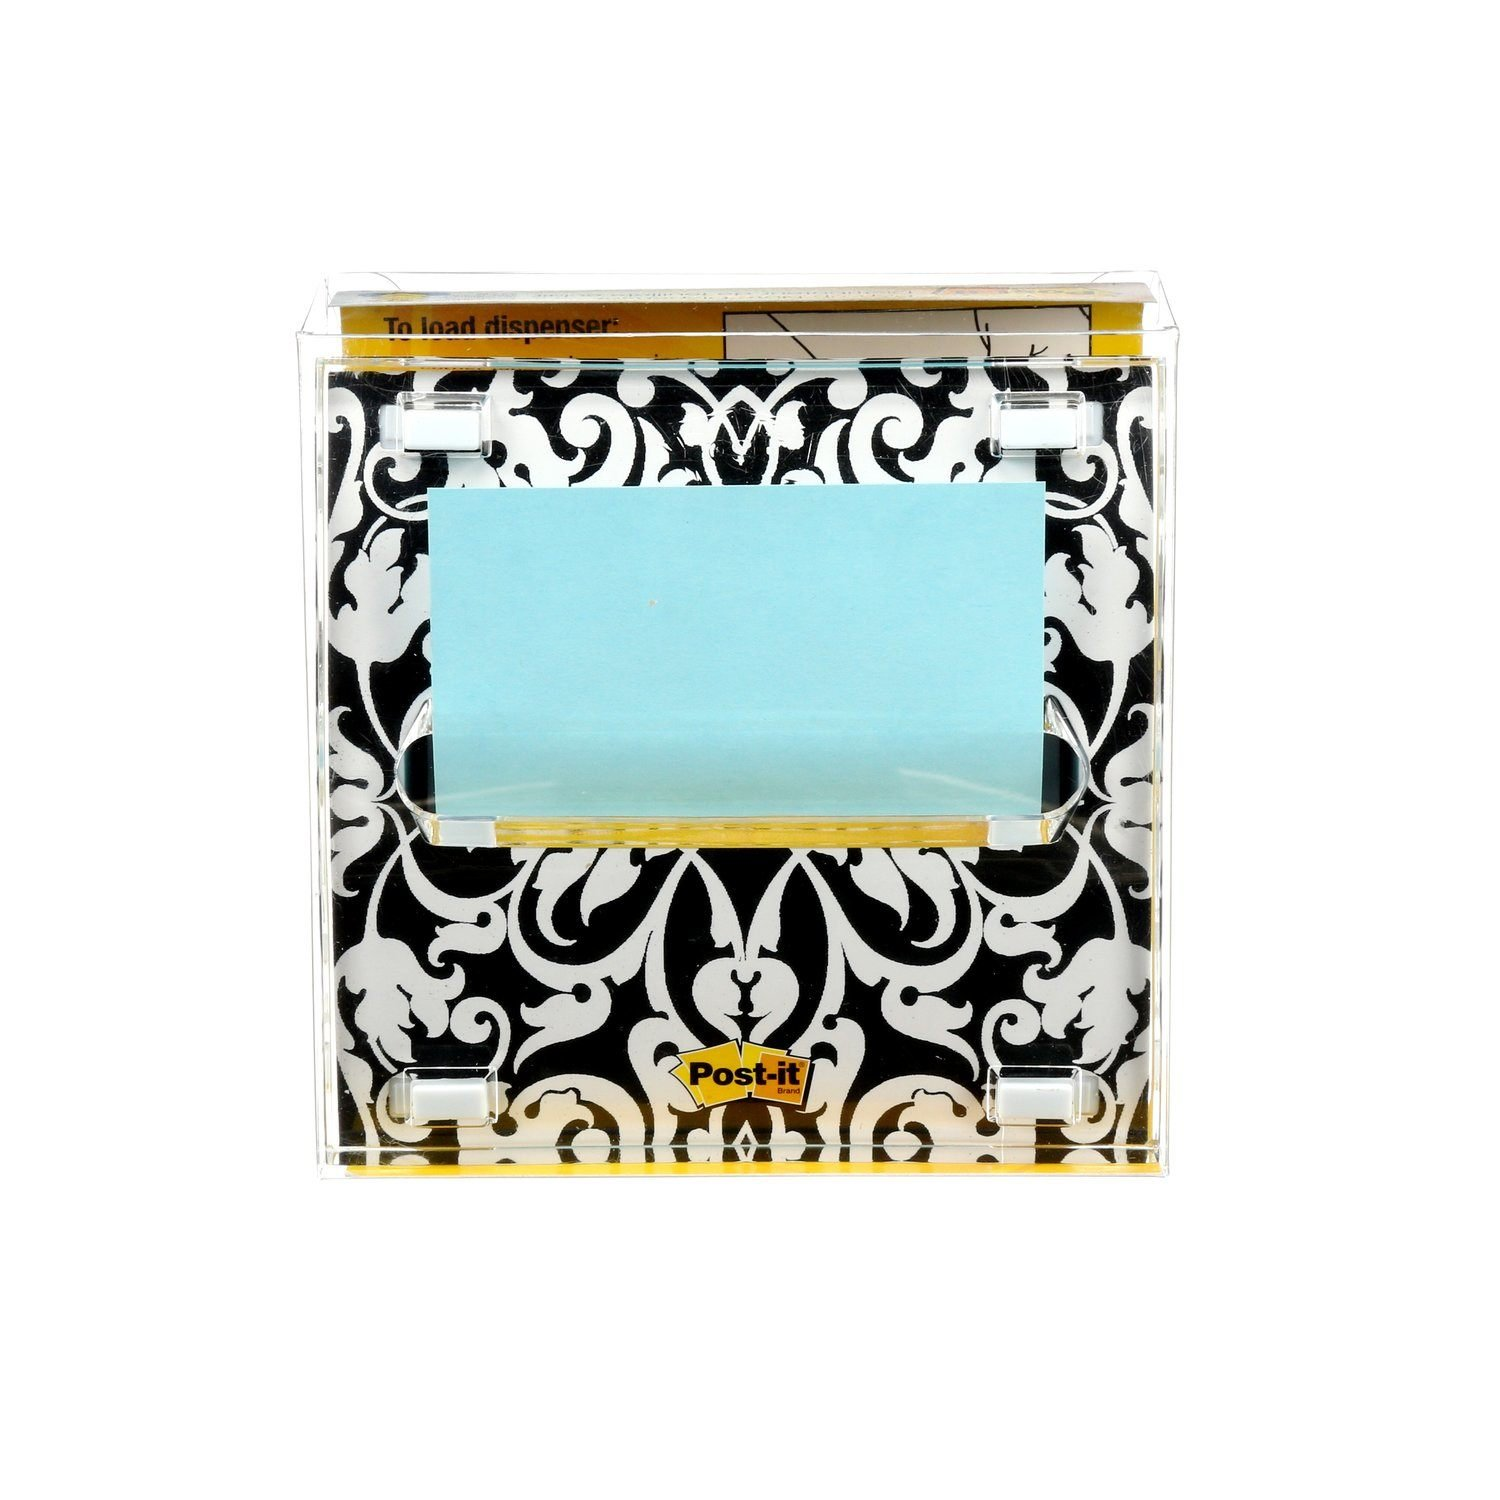 Post-it Pop-up Notes Dispenser for 3 in x 3 in Notes, Includes Black and White Brocade Insert (DS330-BWB)